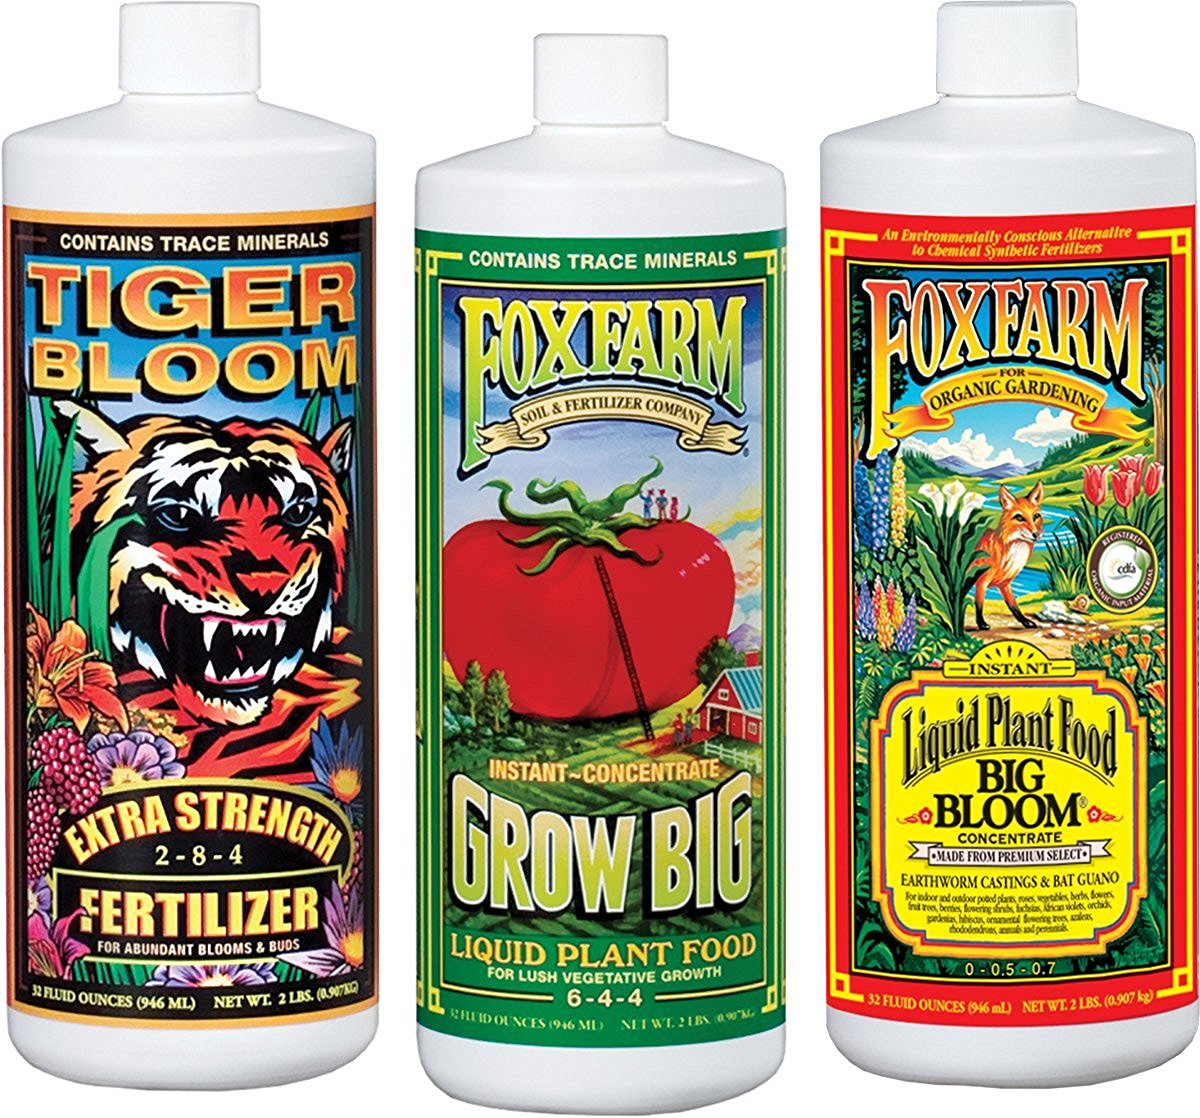 Fox Farm FX14049 Liquid Nutrient Trio Soil Formula: Big Bloom, Grow Big, Tiger Bloom